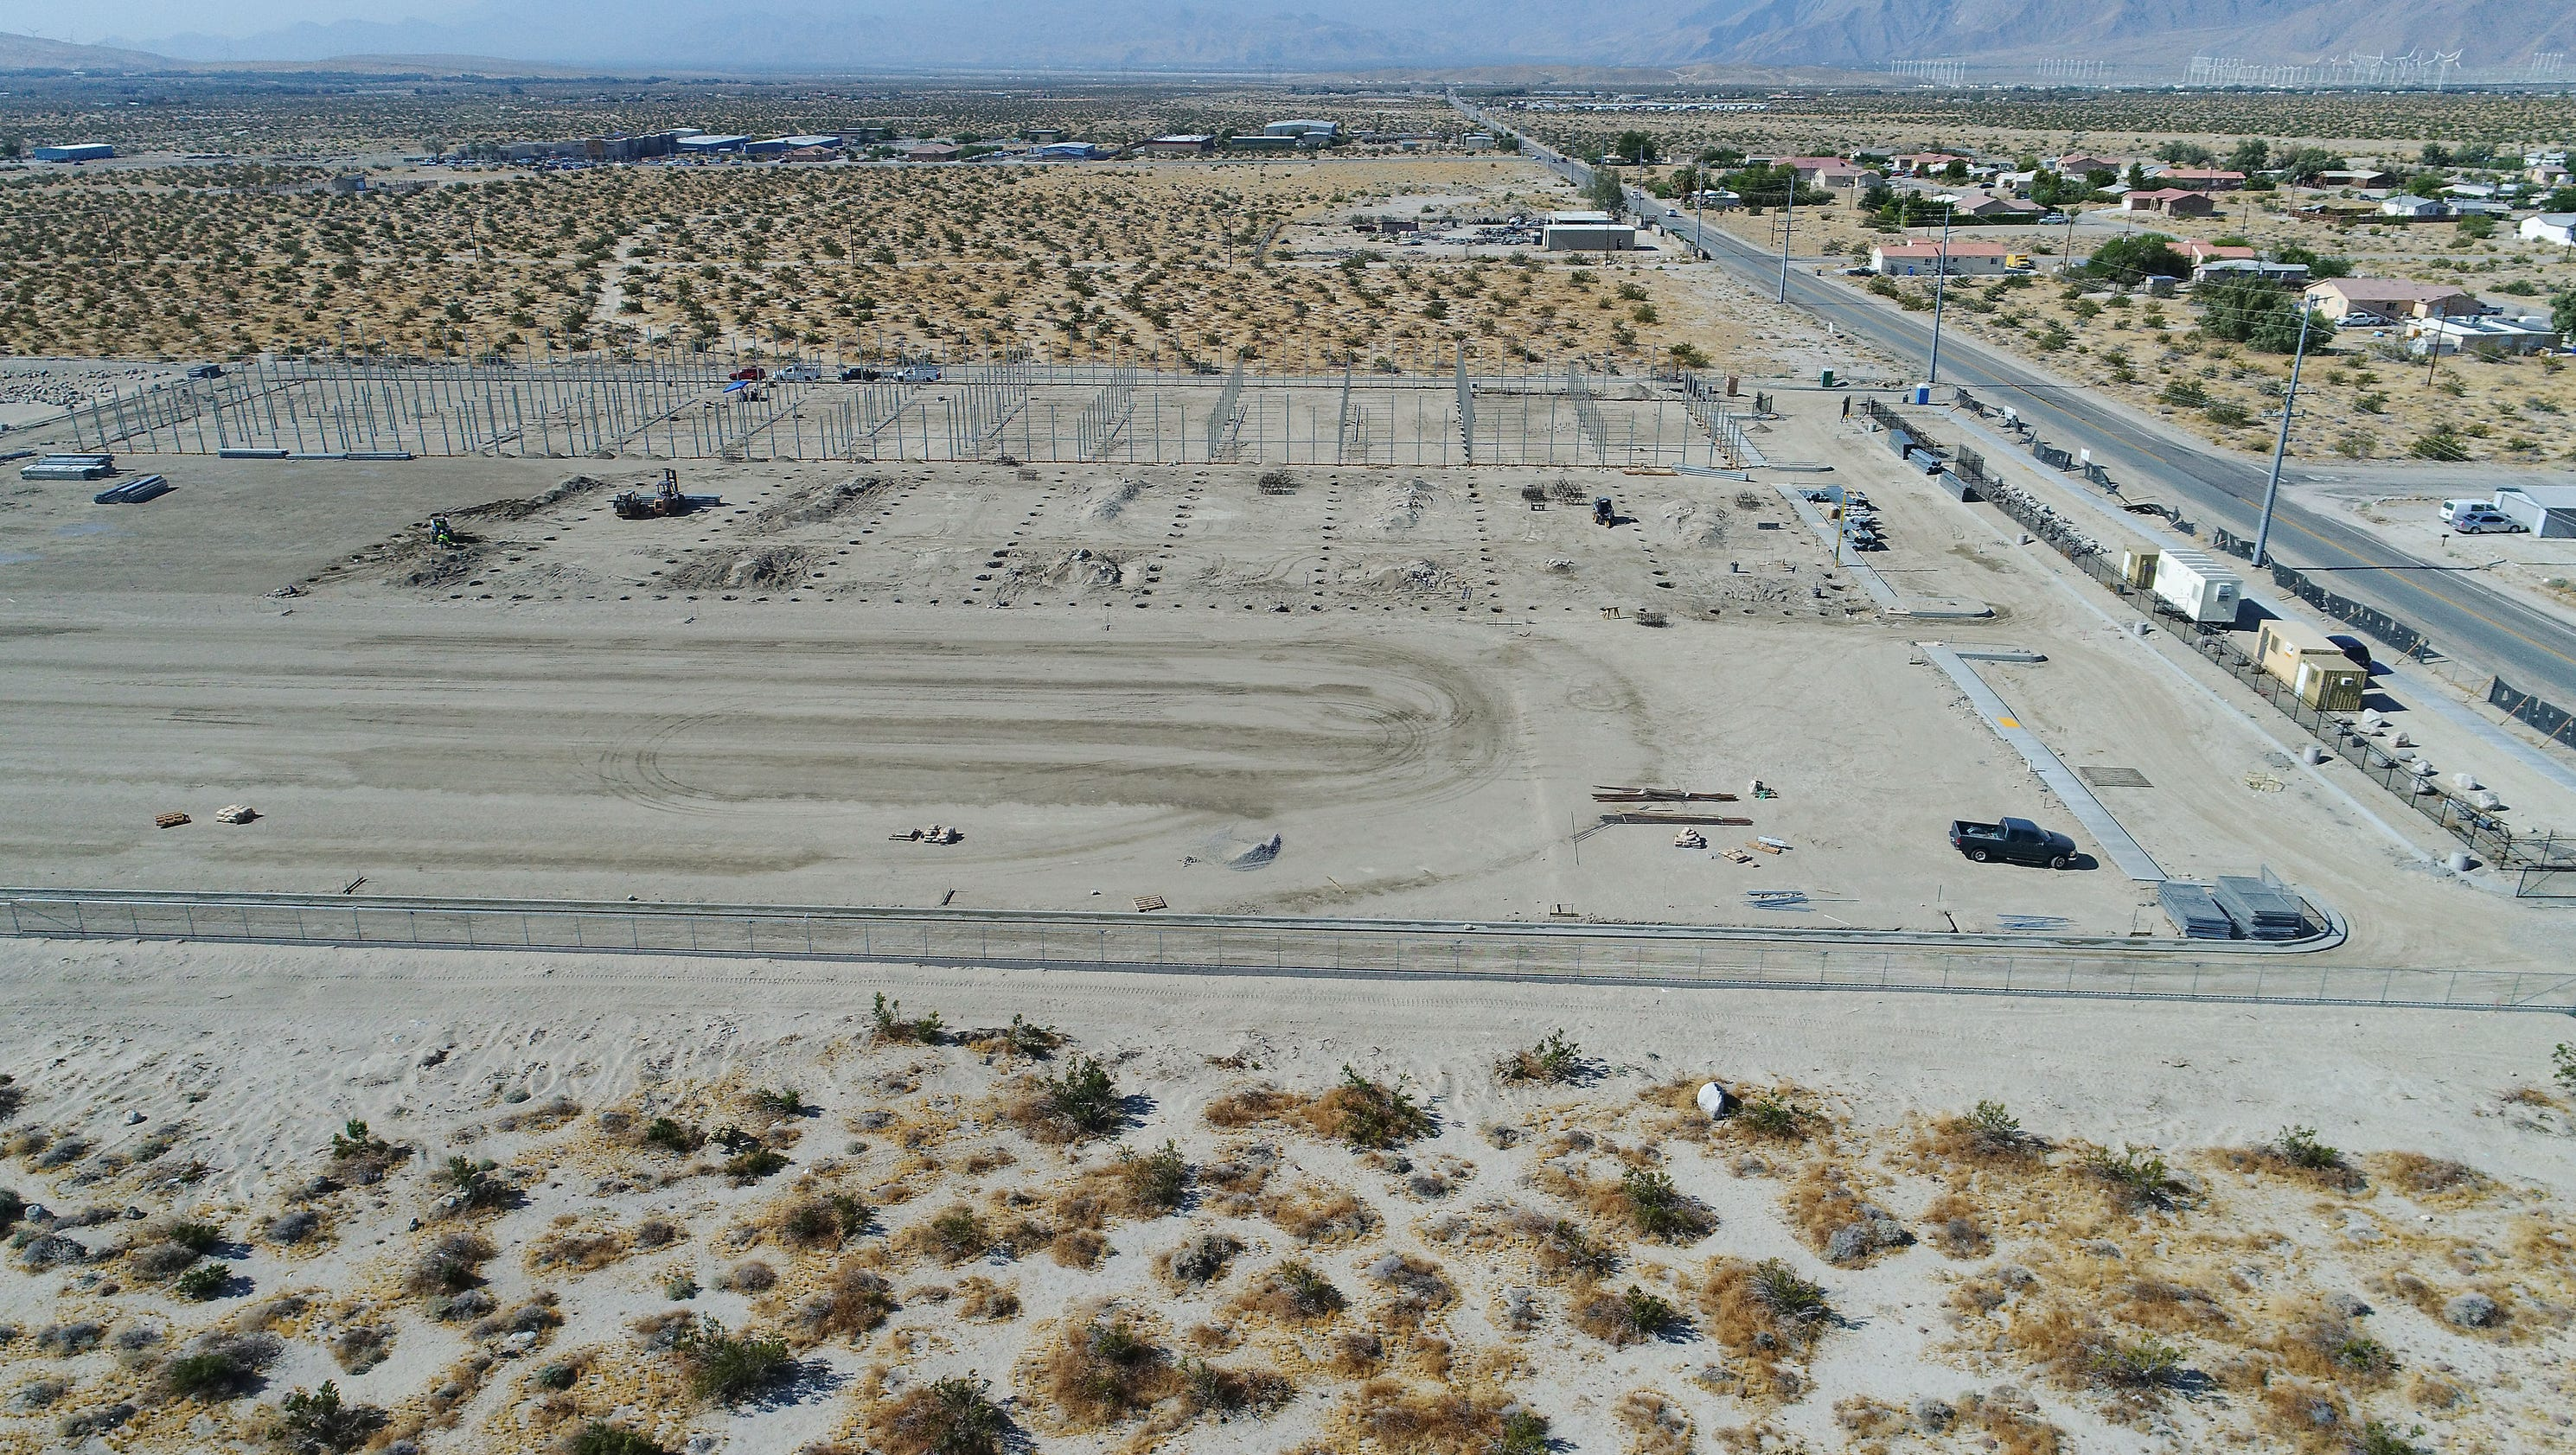 Riverside County might OK businesses on unincorporated land